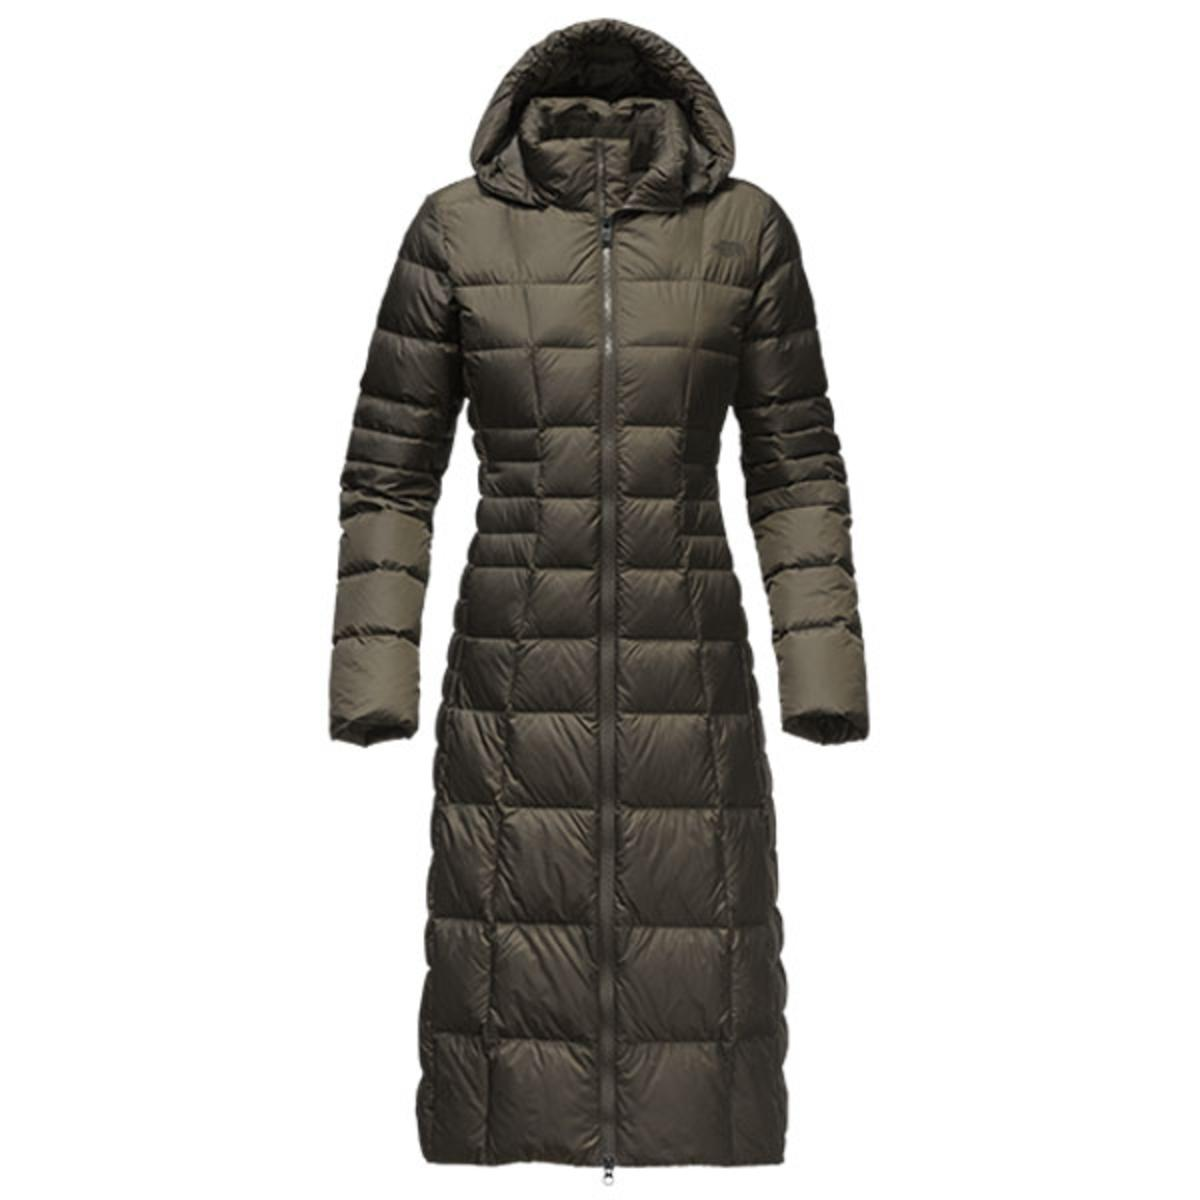 f2137695e8e5 The North Face Women s Triple C II Parka Jacket - The Warming Store